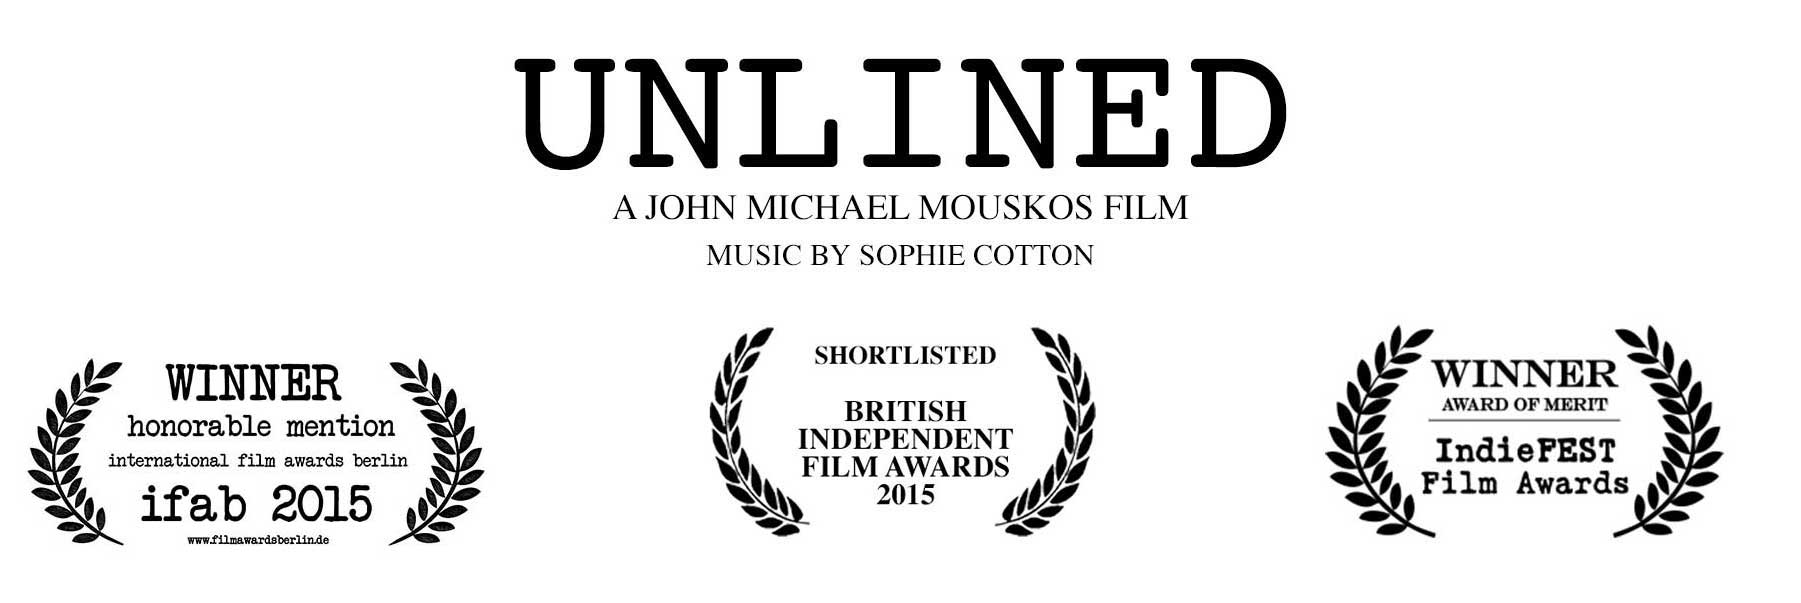 Unlined Logo - Written by John Michael Mouskos